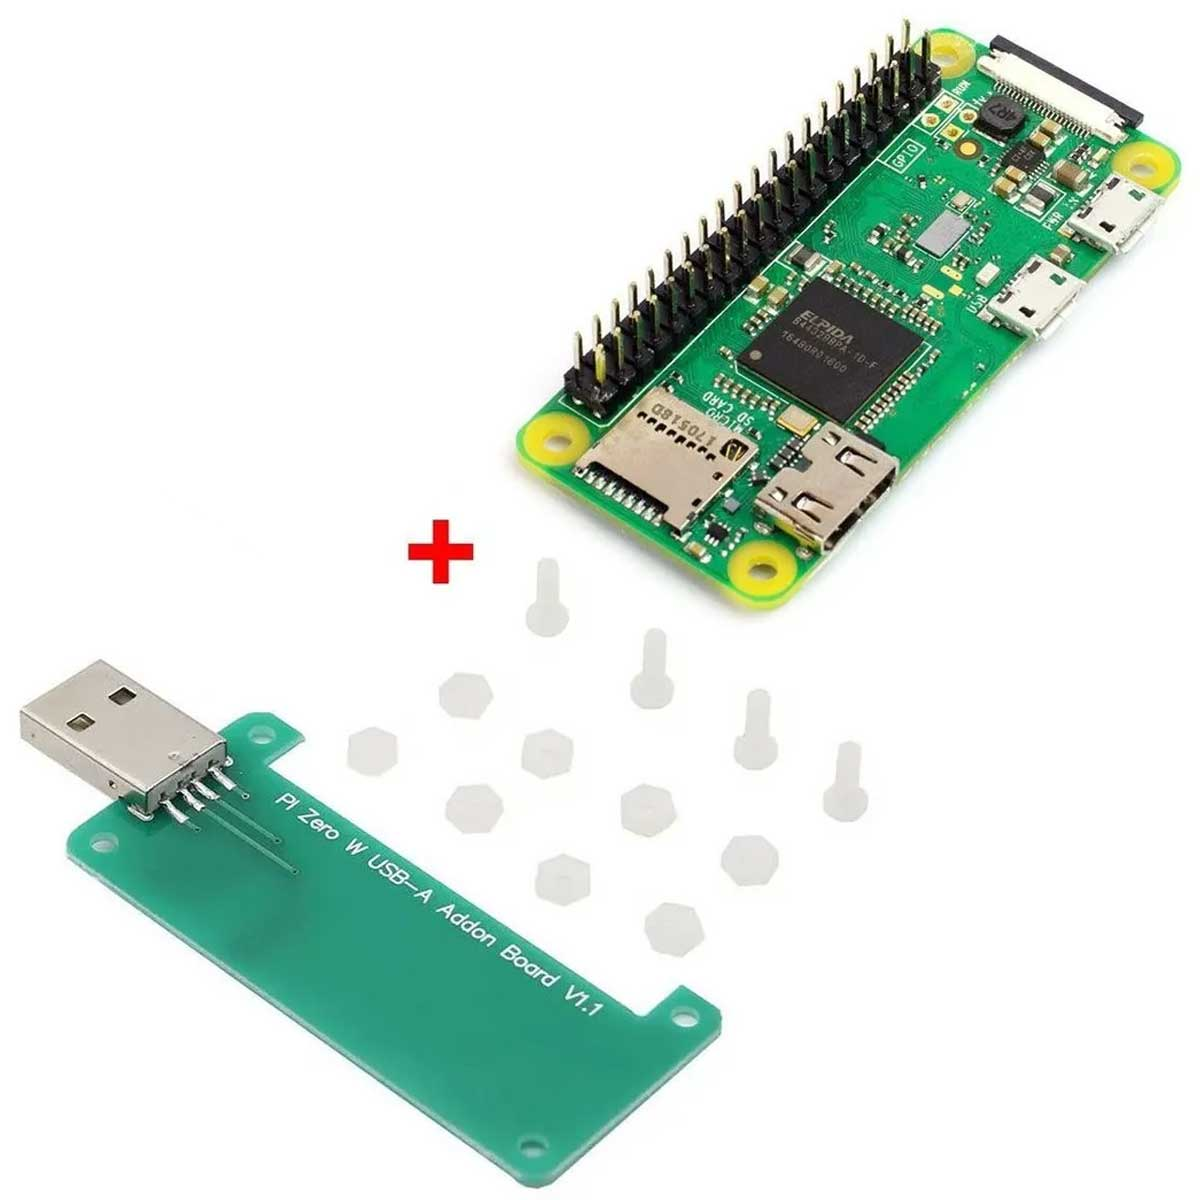 Kit: Raspberry Pi Zero W com Wifi e Bluetooth + Adaptador USB Tipo A para Raspberry Pi Zero